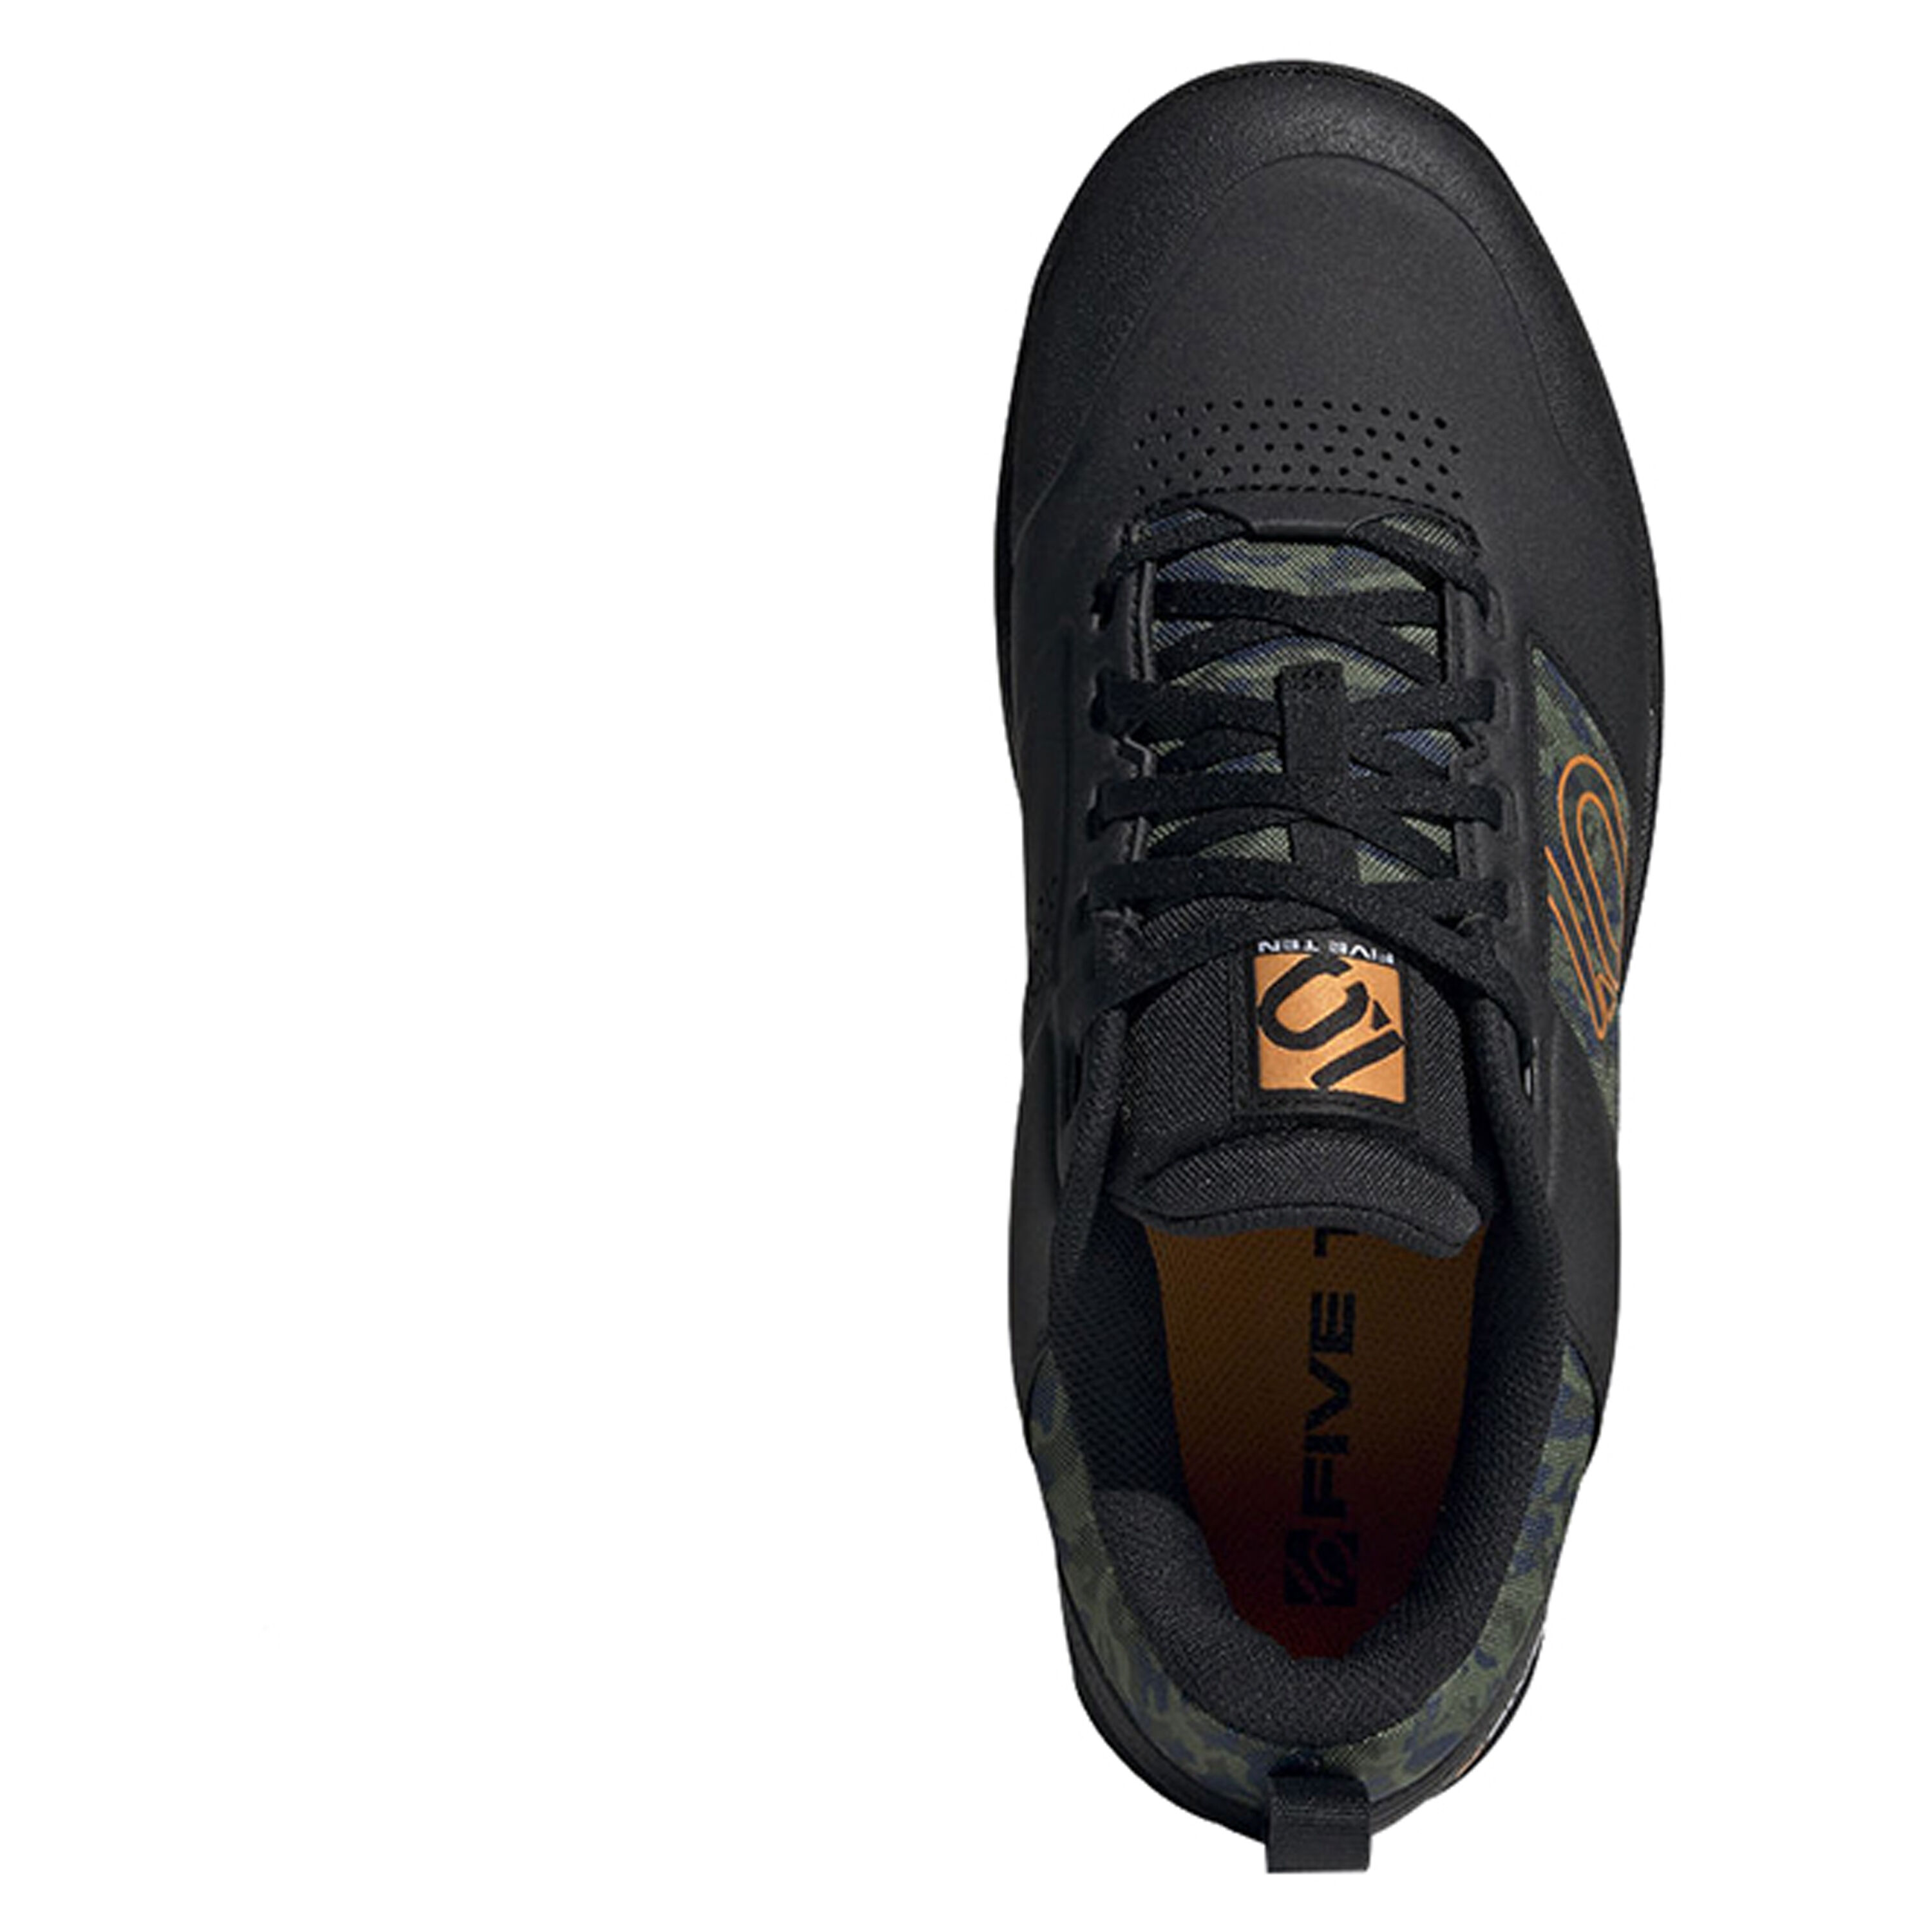 Chaussures Adidas Five Ten Impact Pro